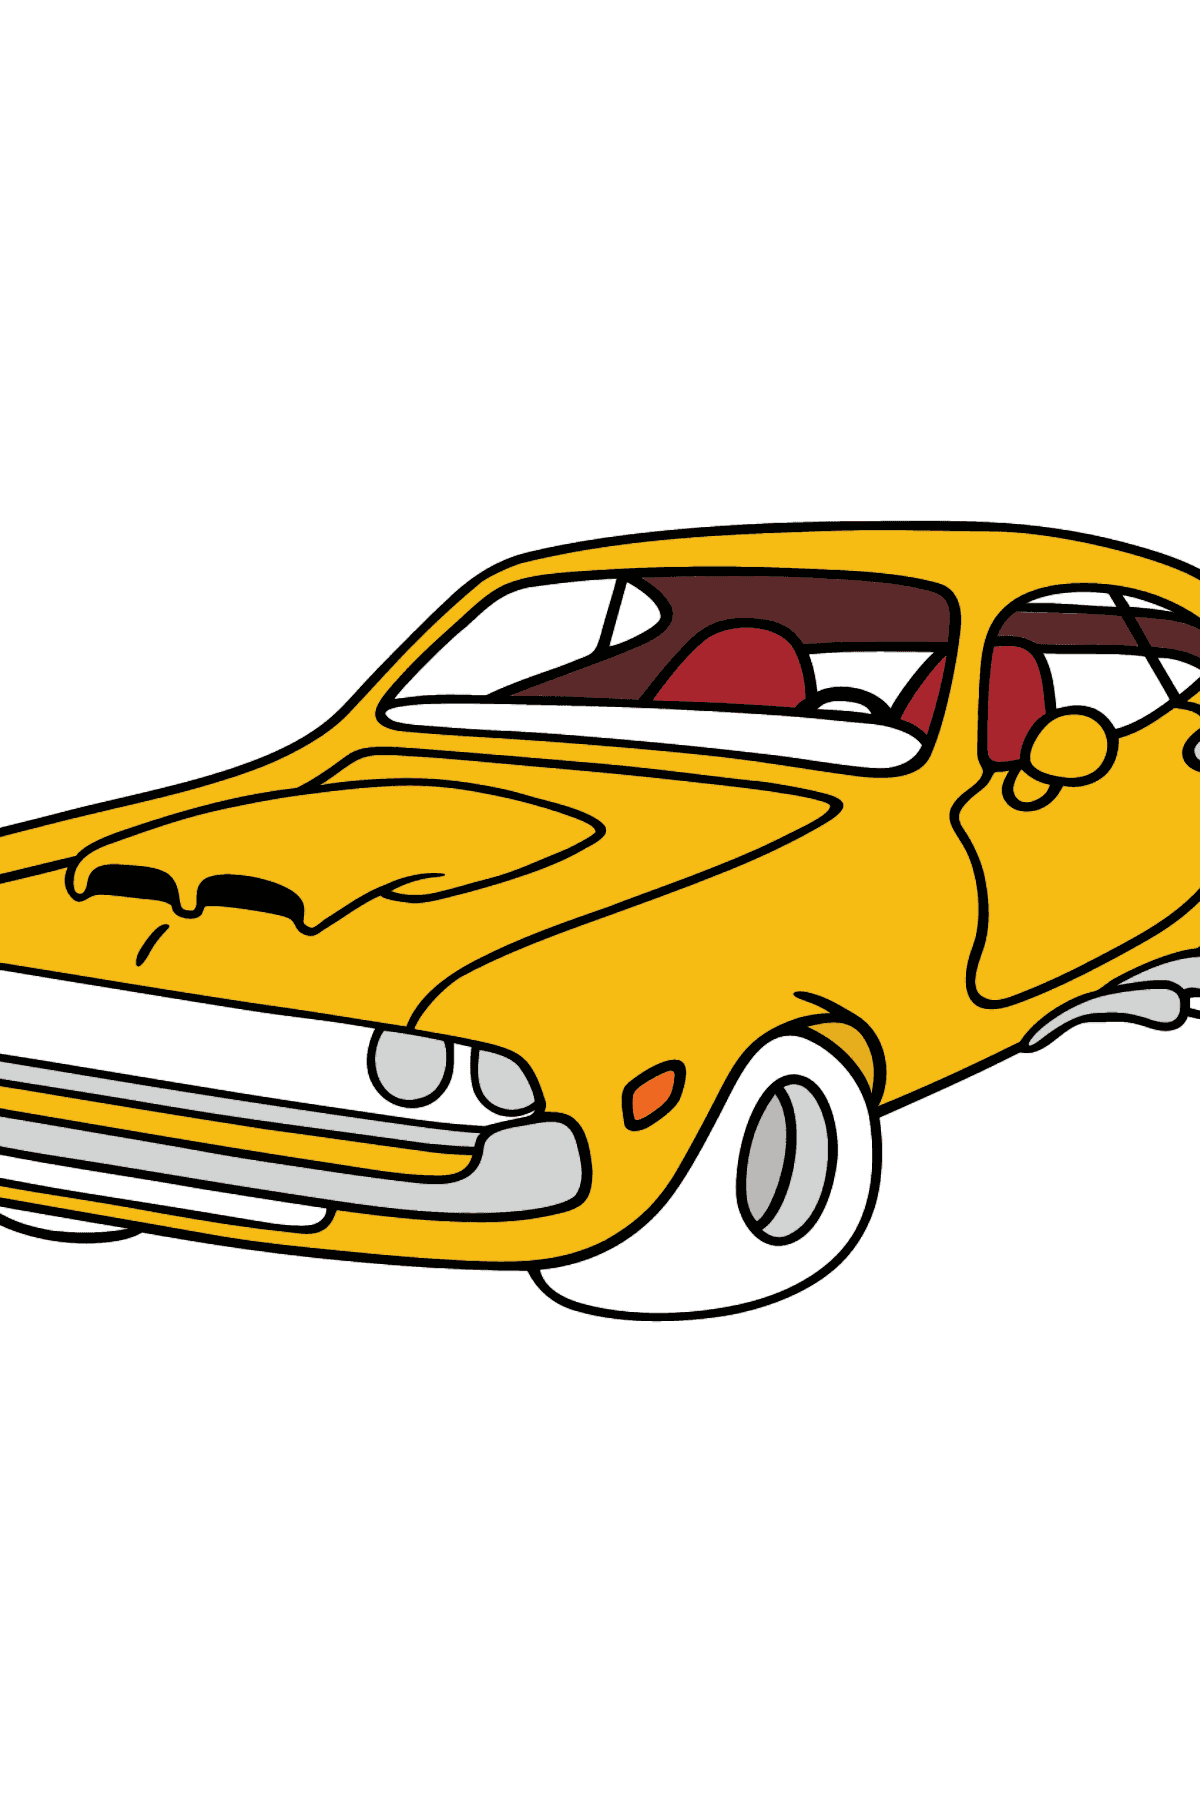 Chevrolet-Chevy Sports Car coloring page - Coloring Pages for Kids